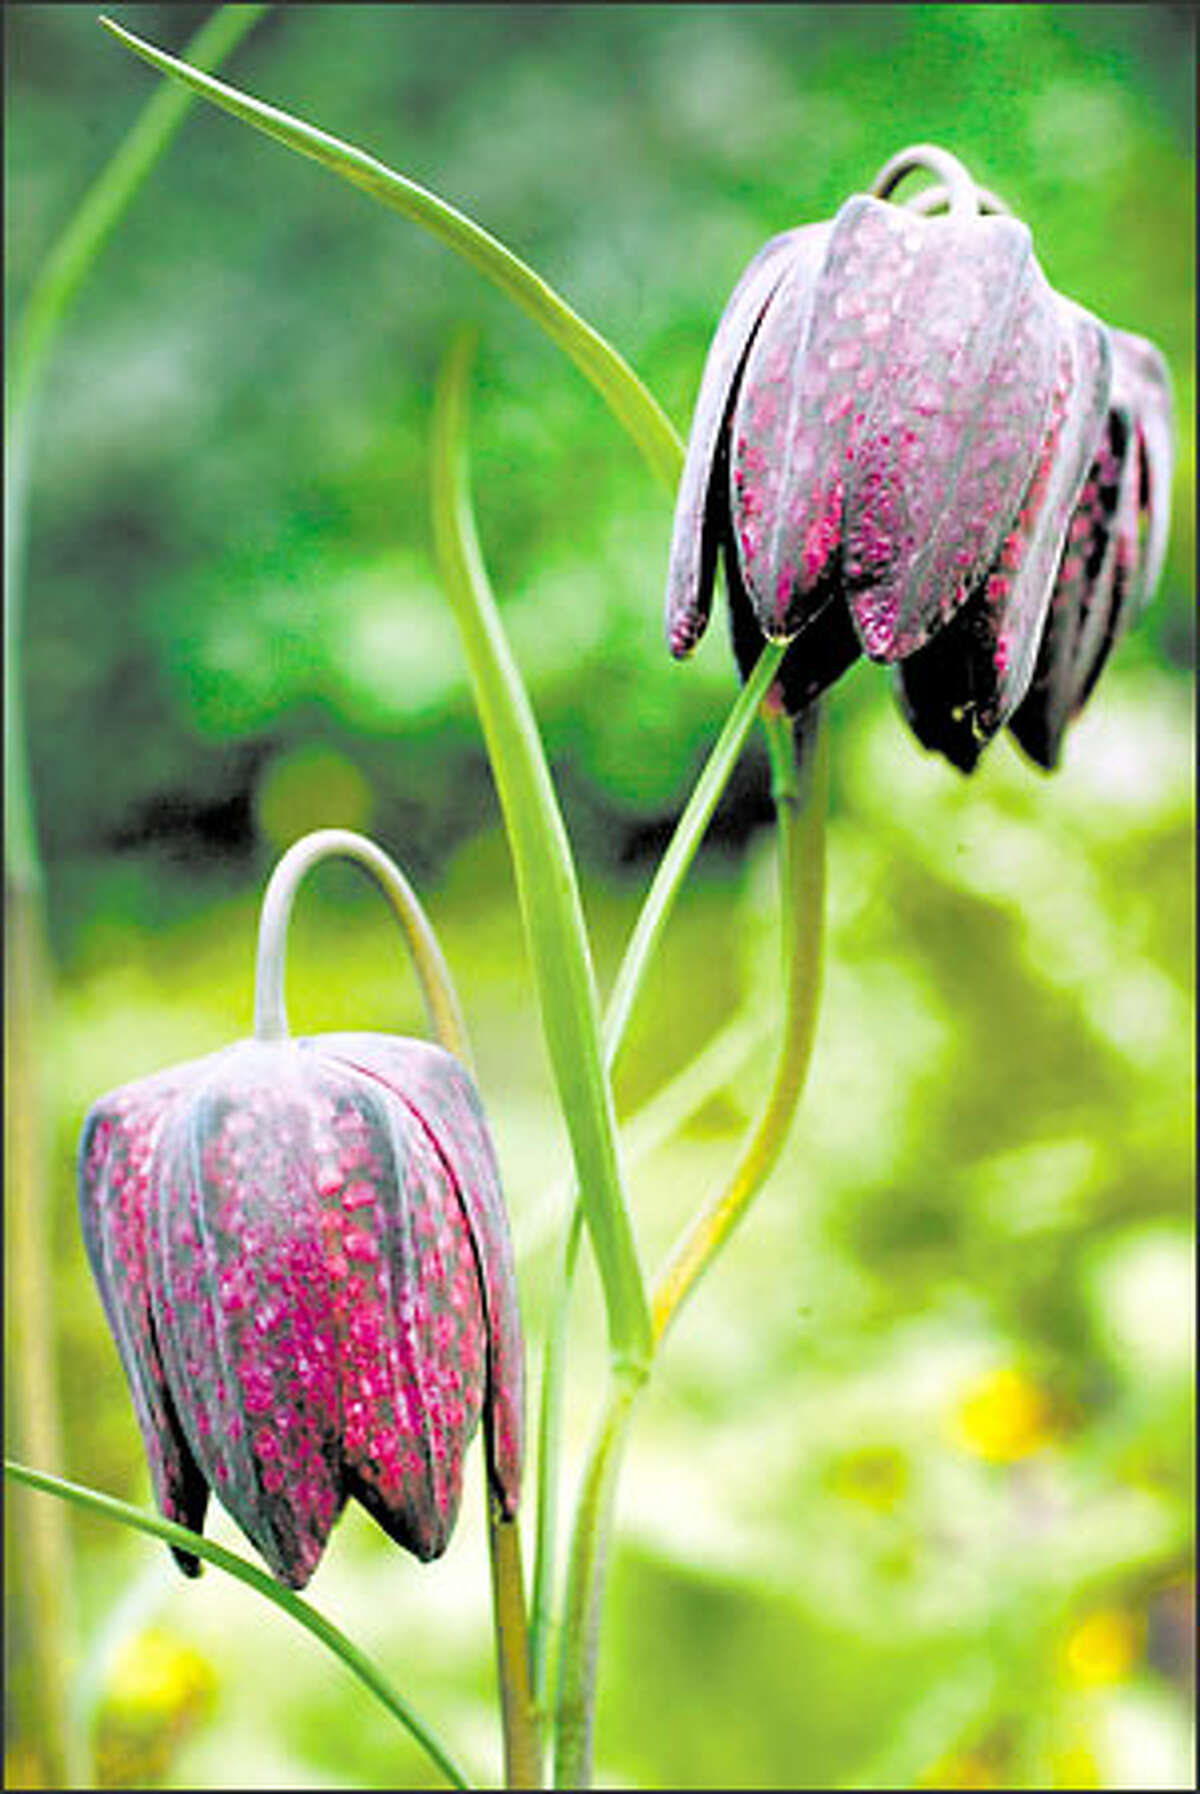 A pair of checkered lilies (Fritillaria meleagris) adorn the Streissguths' garden.